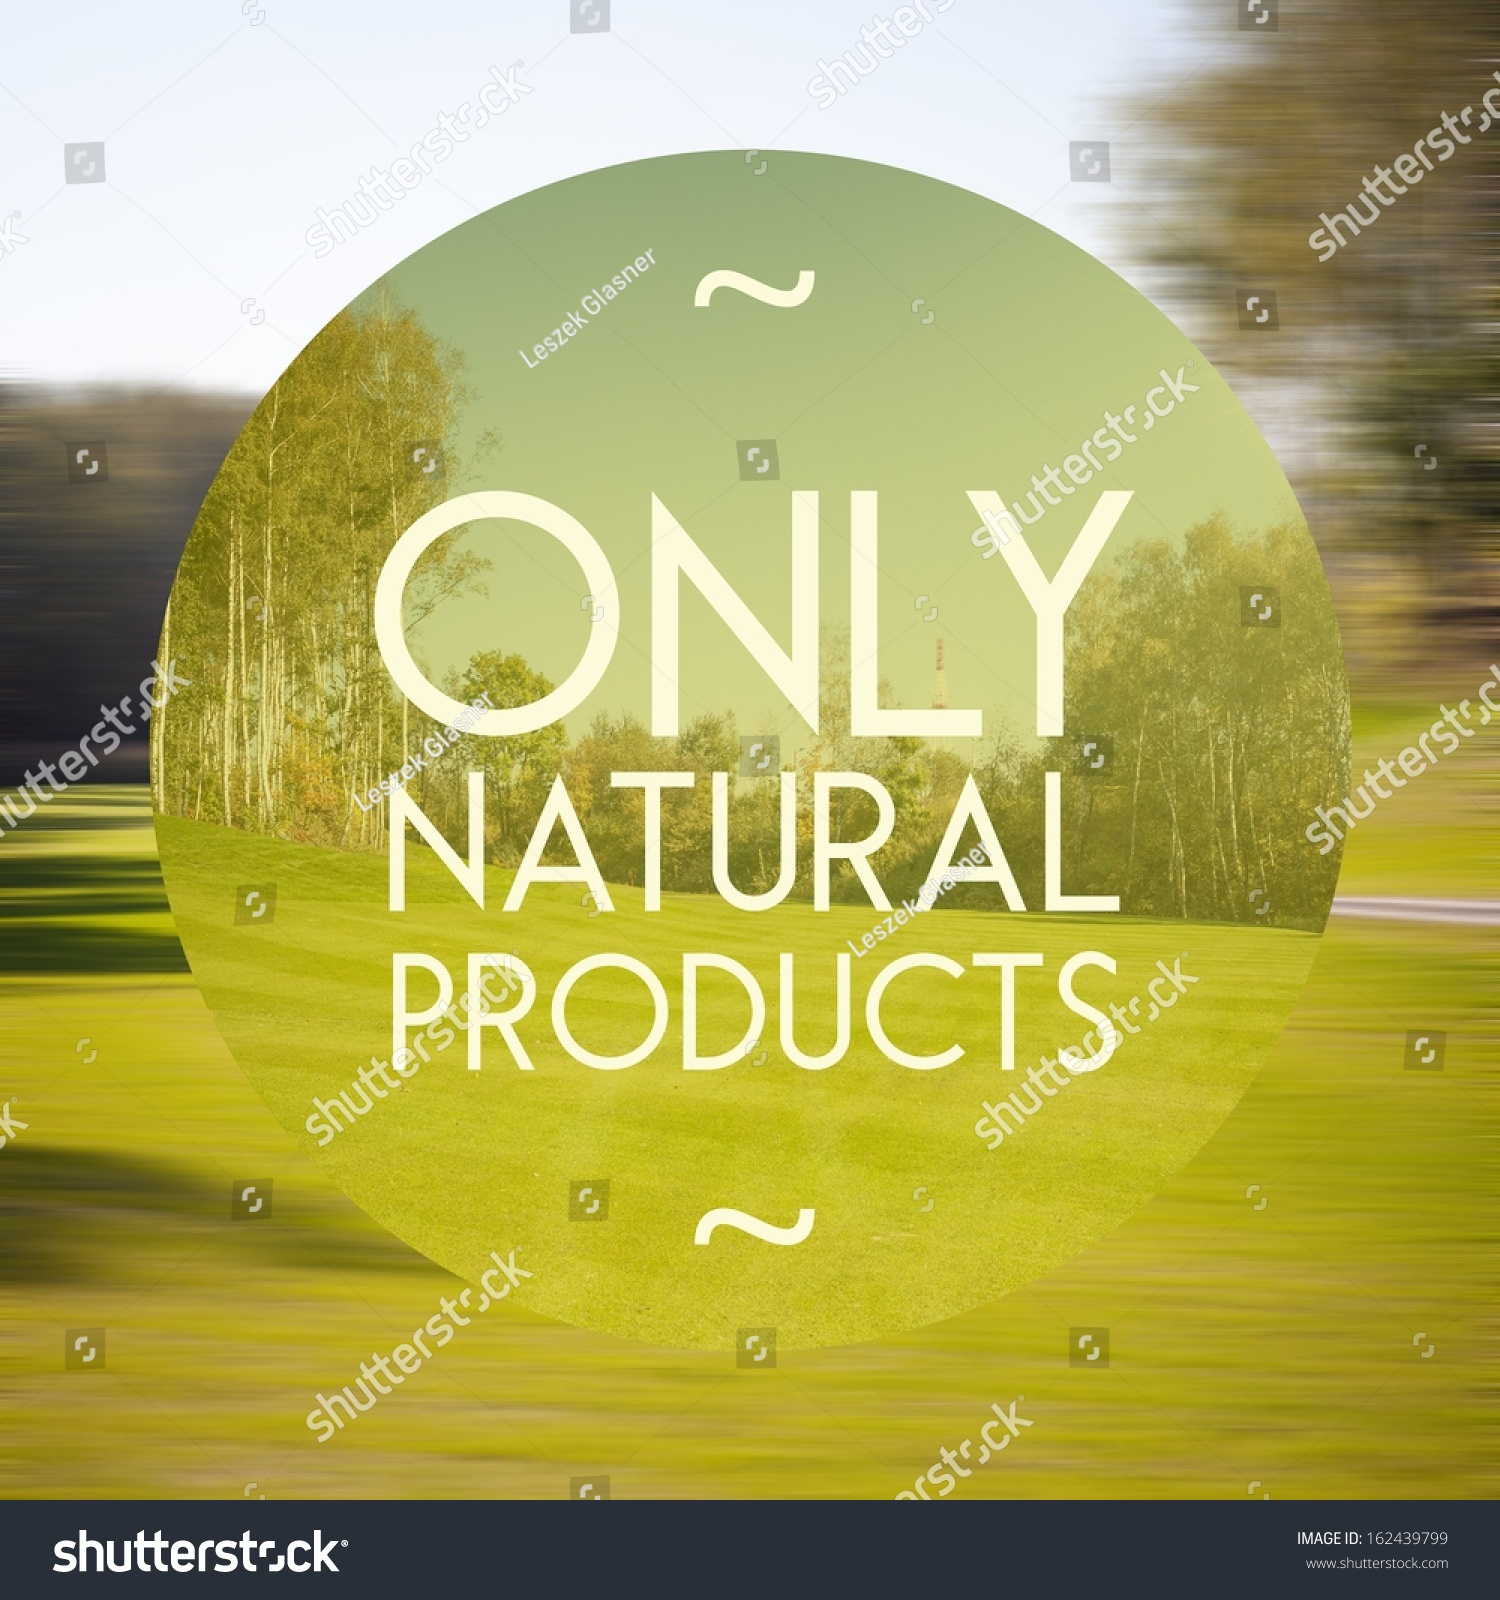 Only Natural Products Poster Illustration Nature Stock ...